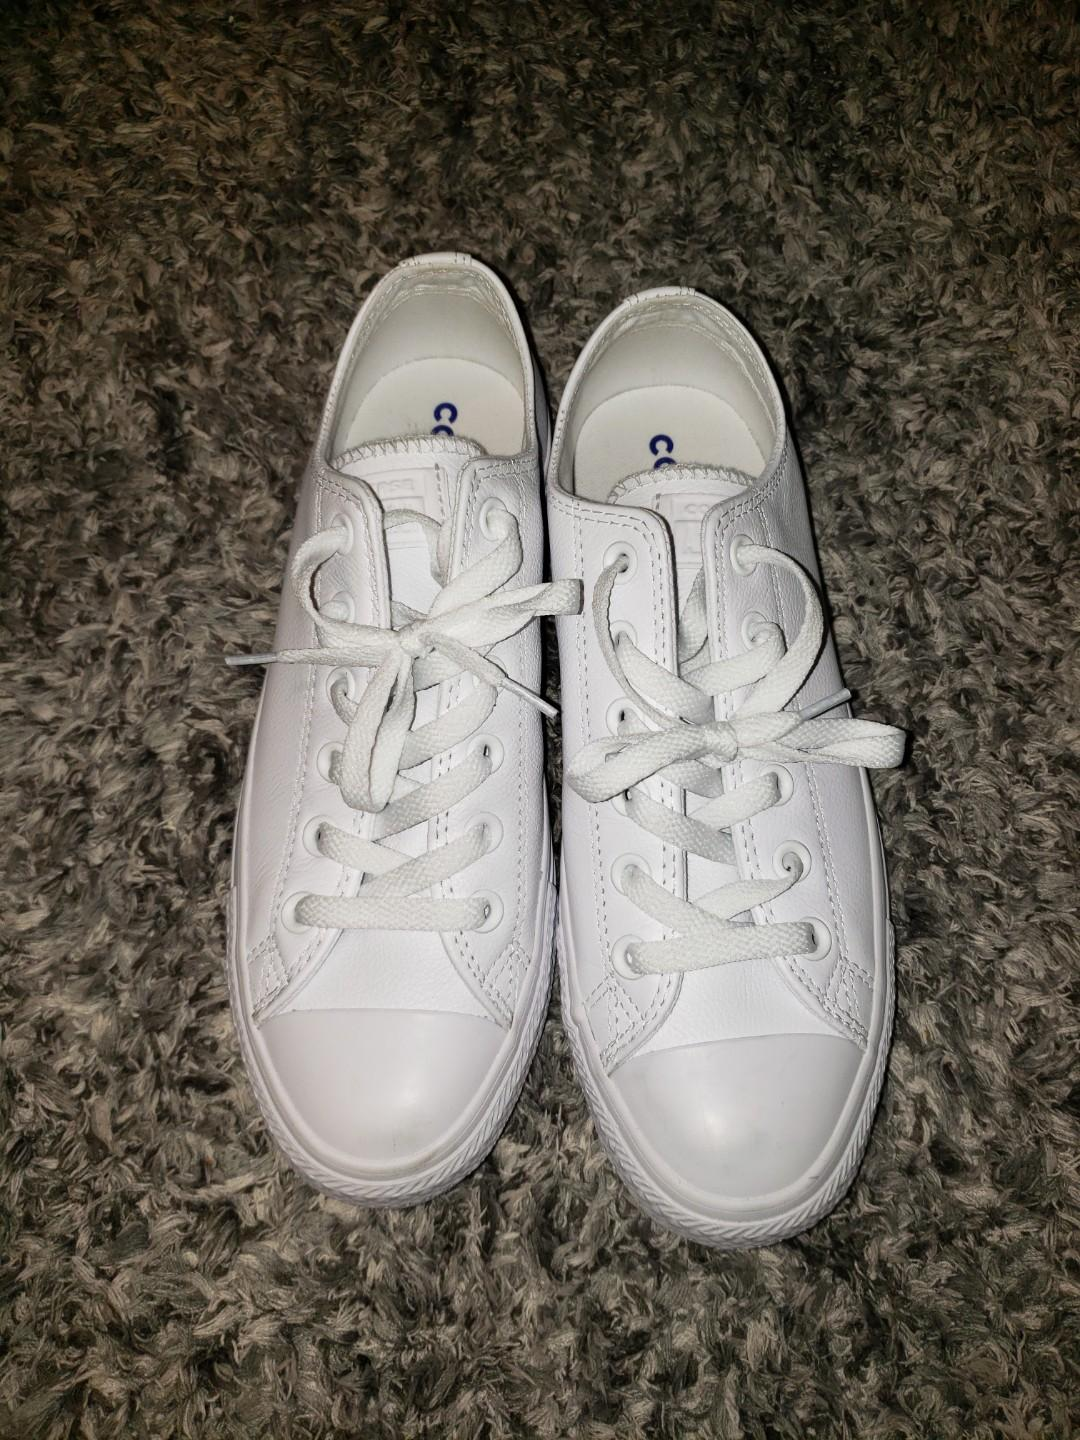 White converse - Chuck Taylor All Star Mono Leather Low Top Sneaker